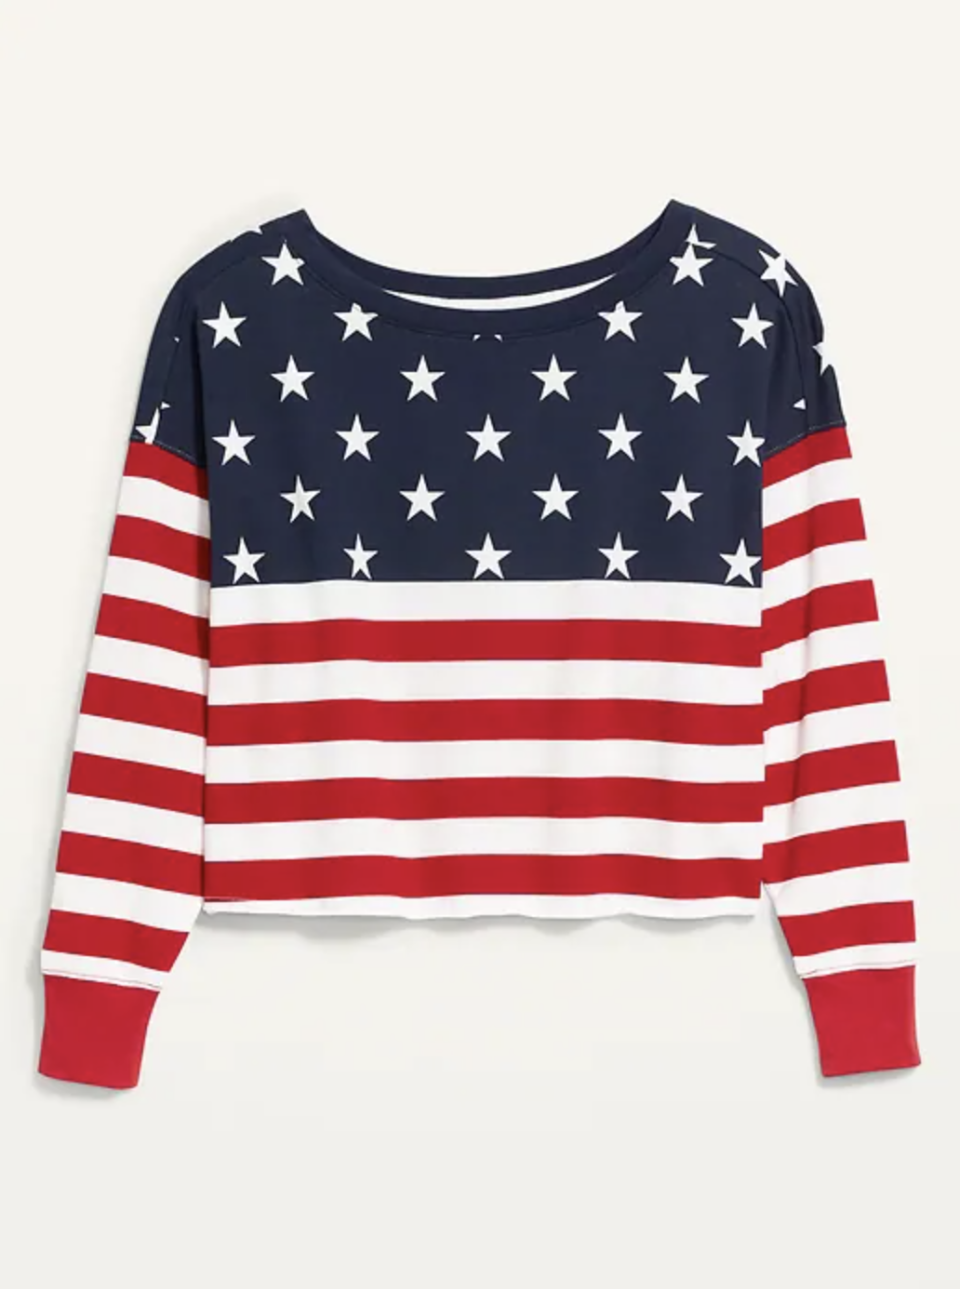 """<p><strong>Old Navy</strong></p><p>oldnavy.gap.com</p><p><strong>$29.97</strong></p><p><a href=""""https://go.redirectingat.com?id=74968X1596630&url=https%3A%2F%2Foldnavy.gap.com%2Fbrowse%2Fproduct.do%3Fpid%3D688869012%26modelSize%3DM%26vid%3D1%26tid%3Donpl000017%26kwid%3D1%26ap%3D7%23pdp-page-content&sref=https%3A%2F%2Fwww.townandcountrymag.com%2Fsociety%2Ftradition%2Fg37681411%2Fprincess-diana-sweatshirt-biker-shorts-outfit-inspiration%2F"""" rel=""""nofollow noopener"""" target=""""_blank"""" data-ylk=""""slk:Shop Now"""" class=""""link rapid-noclick-resp"""">Shop Now</a></p><p>Stars on top, stripes on the bottom, and cozy all over, Diana proved that flag-themed apparel is not just for July 4th. </p>"""